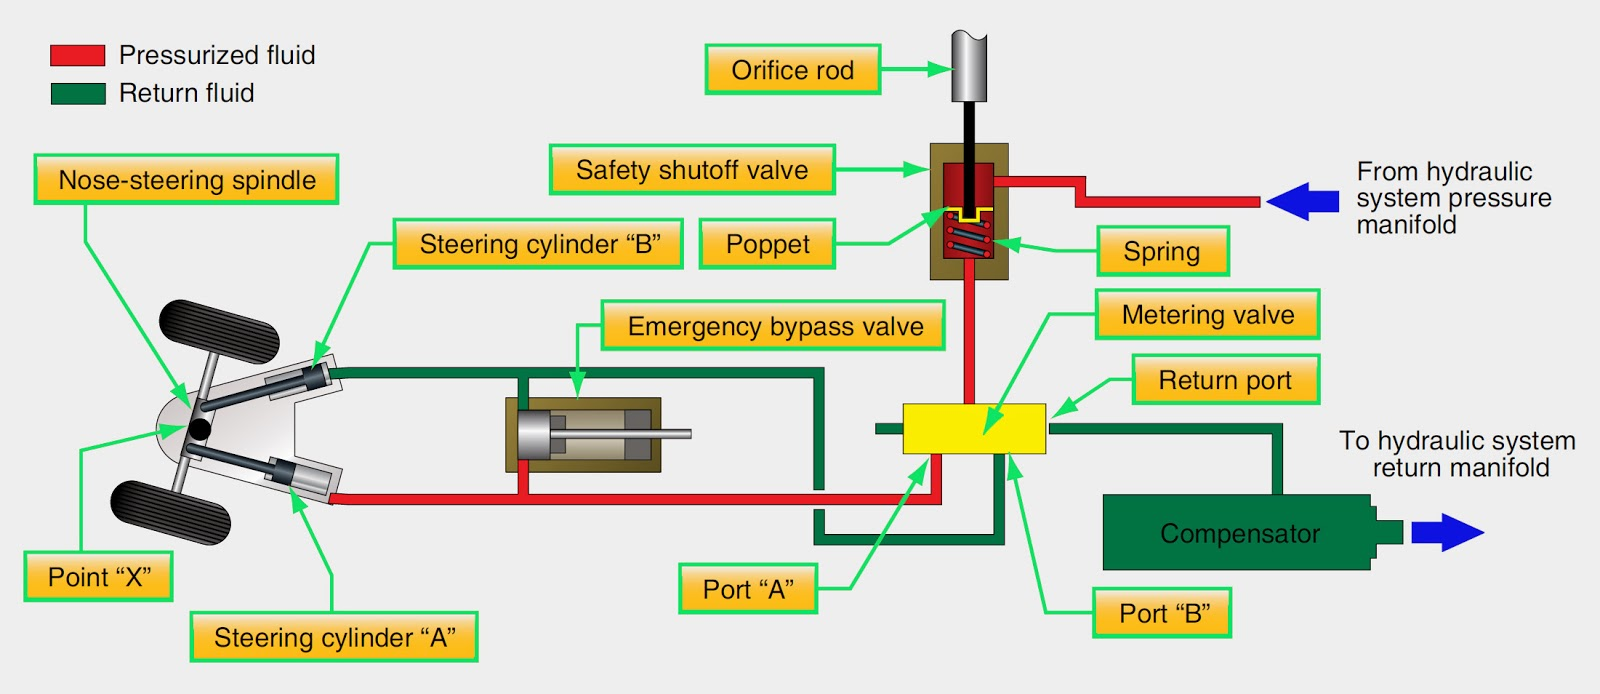 figure 2 hydraulic system flow diagram of large aircraft nose wheel steering system [ 1600 x 694 Pixel ]